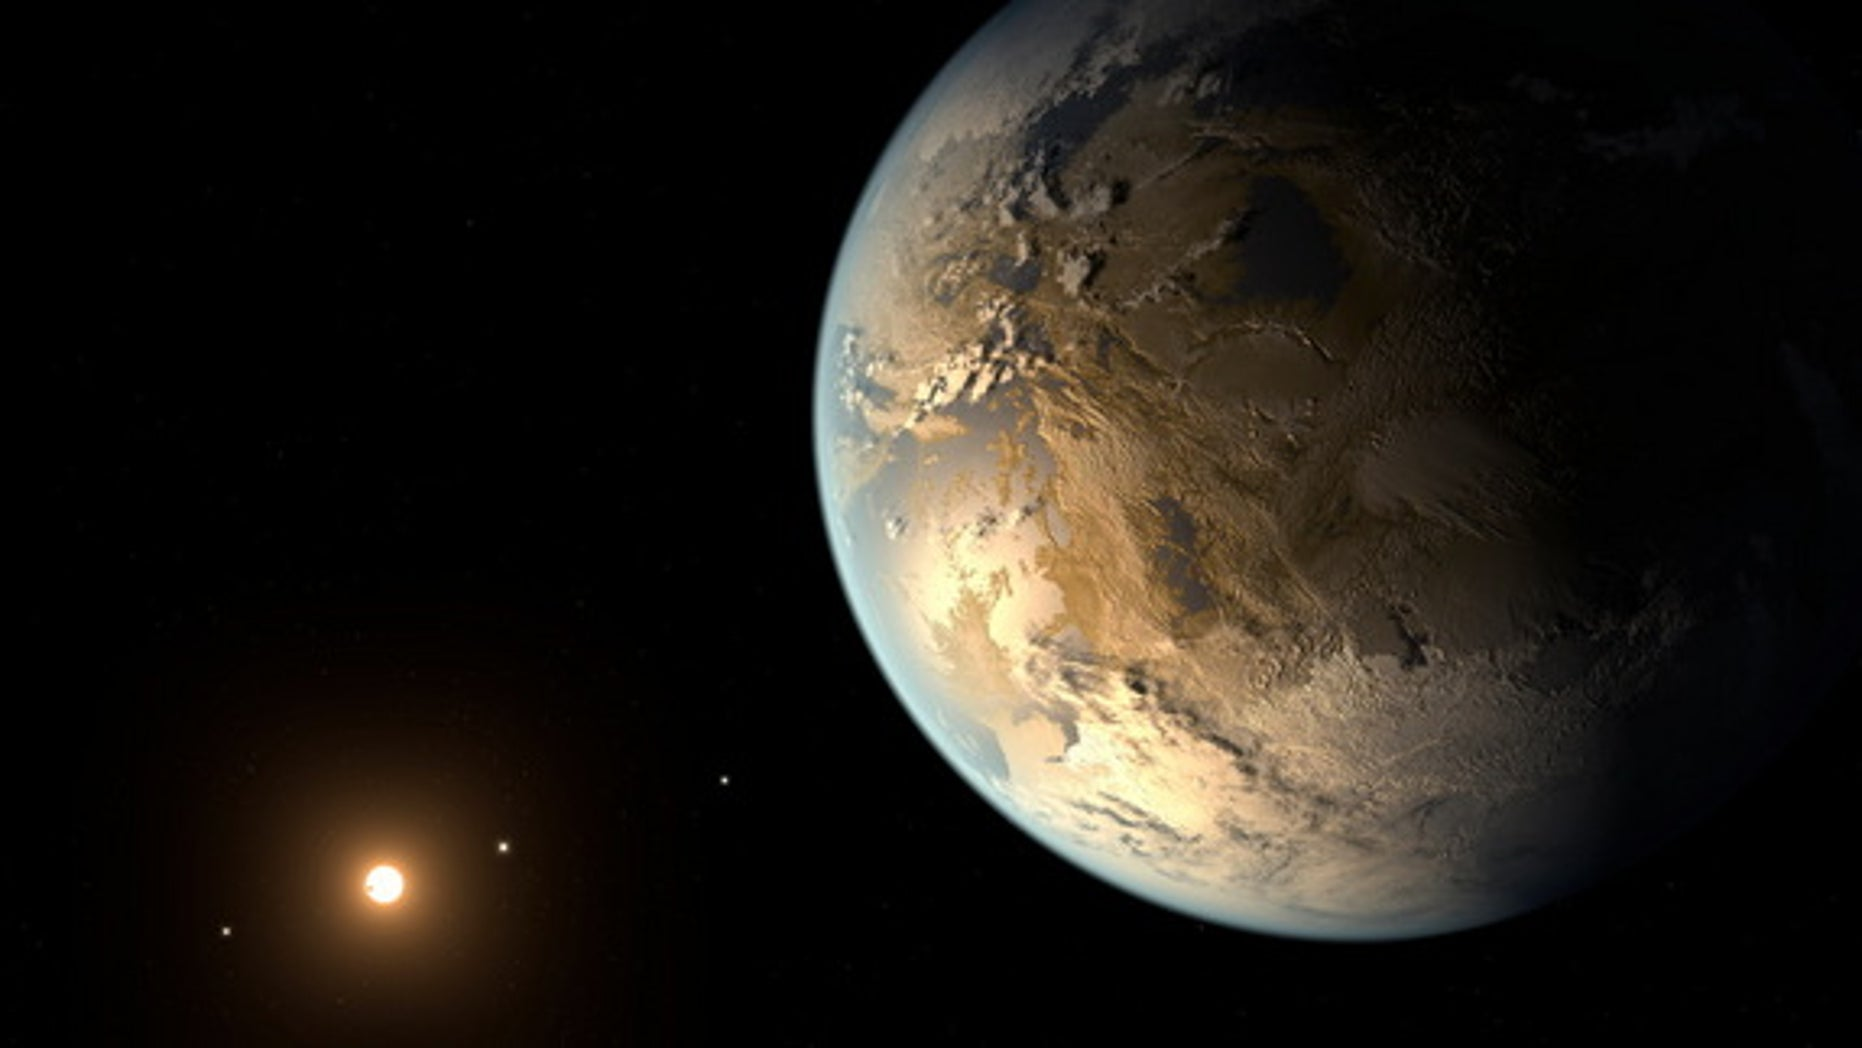 Artist's concept of Kepler-186f, the first Earth-size planet found orbiting in the habitable zone of its parent star. Kepler-186f orbits a red dwarf about 490 light-years from Earth.